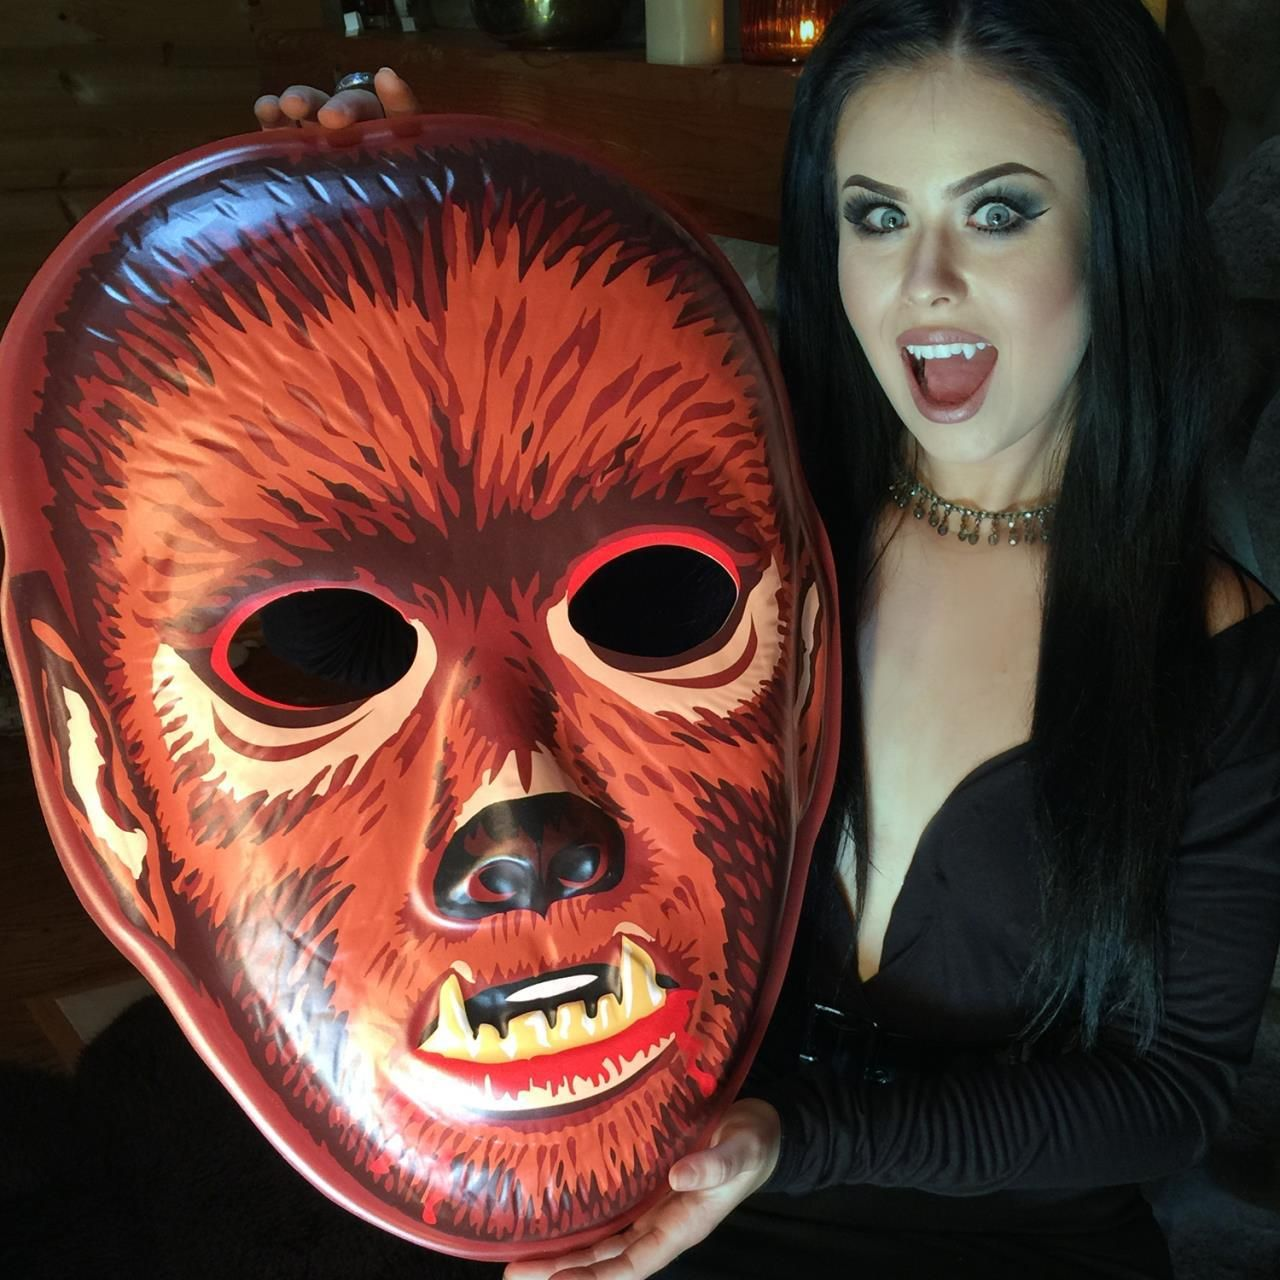 Giant Vintage inspired mask art :: Need more walls :: VAC-TASTIC PLASTIC :: Click thru to see them all.